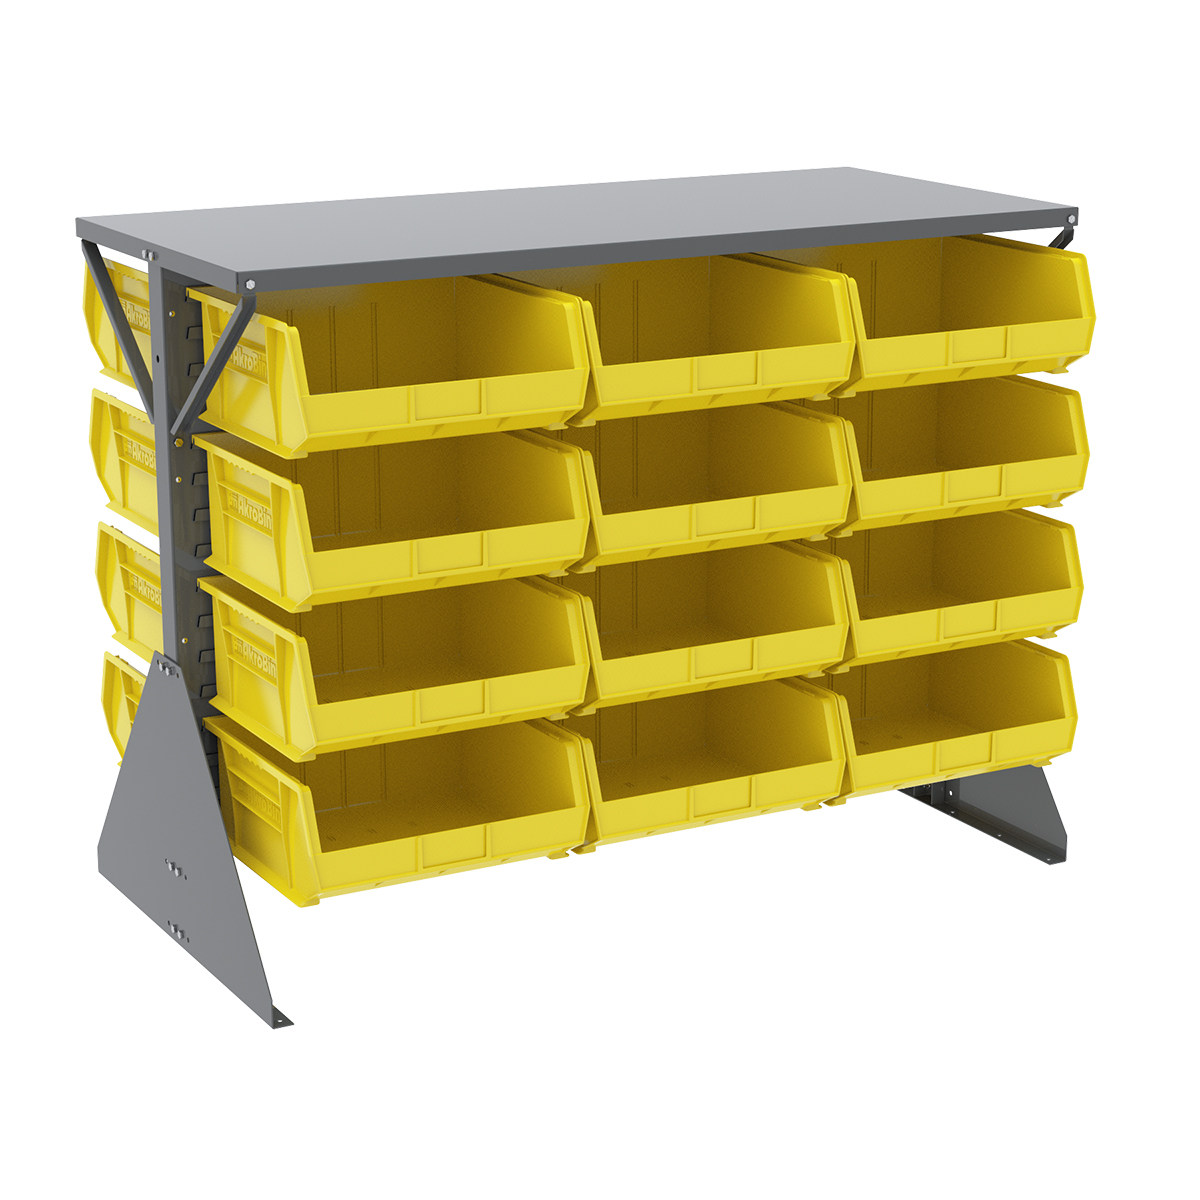 Item DISCONTINUED by Manufacturer.  Low Profile Floor Rack, 2-Sided, Shelf w/ 24 AkroBins, Gray/Yellow (30606GY250Y).  This item sold in carton quantities of 1.